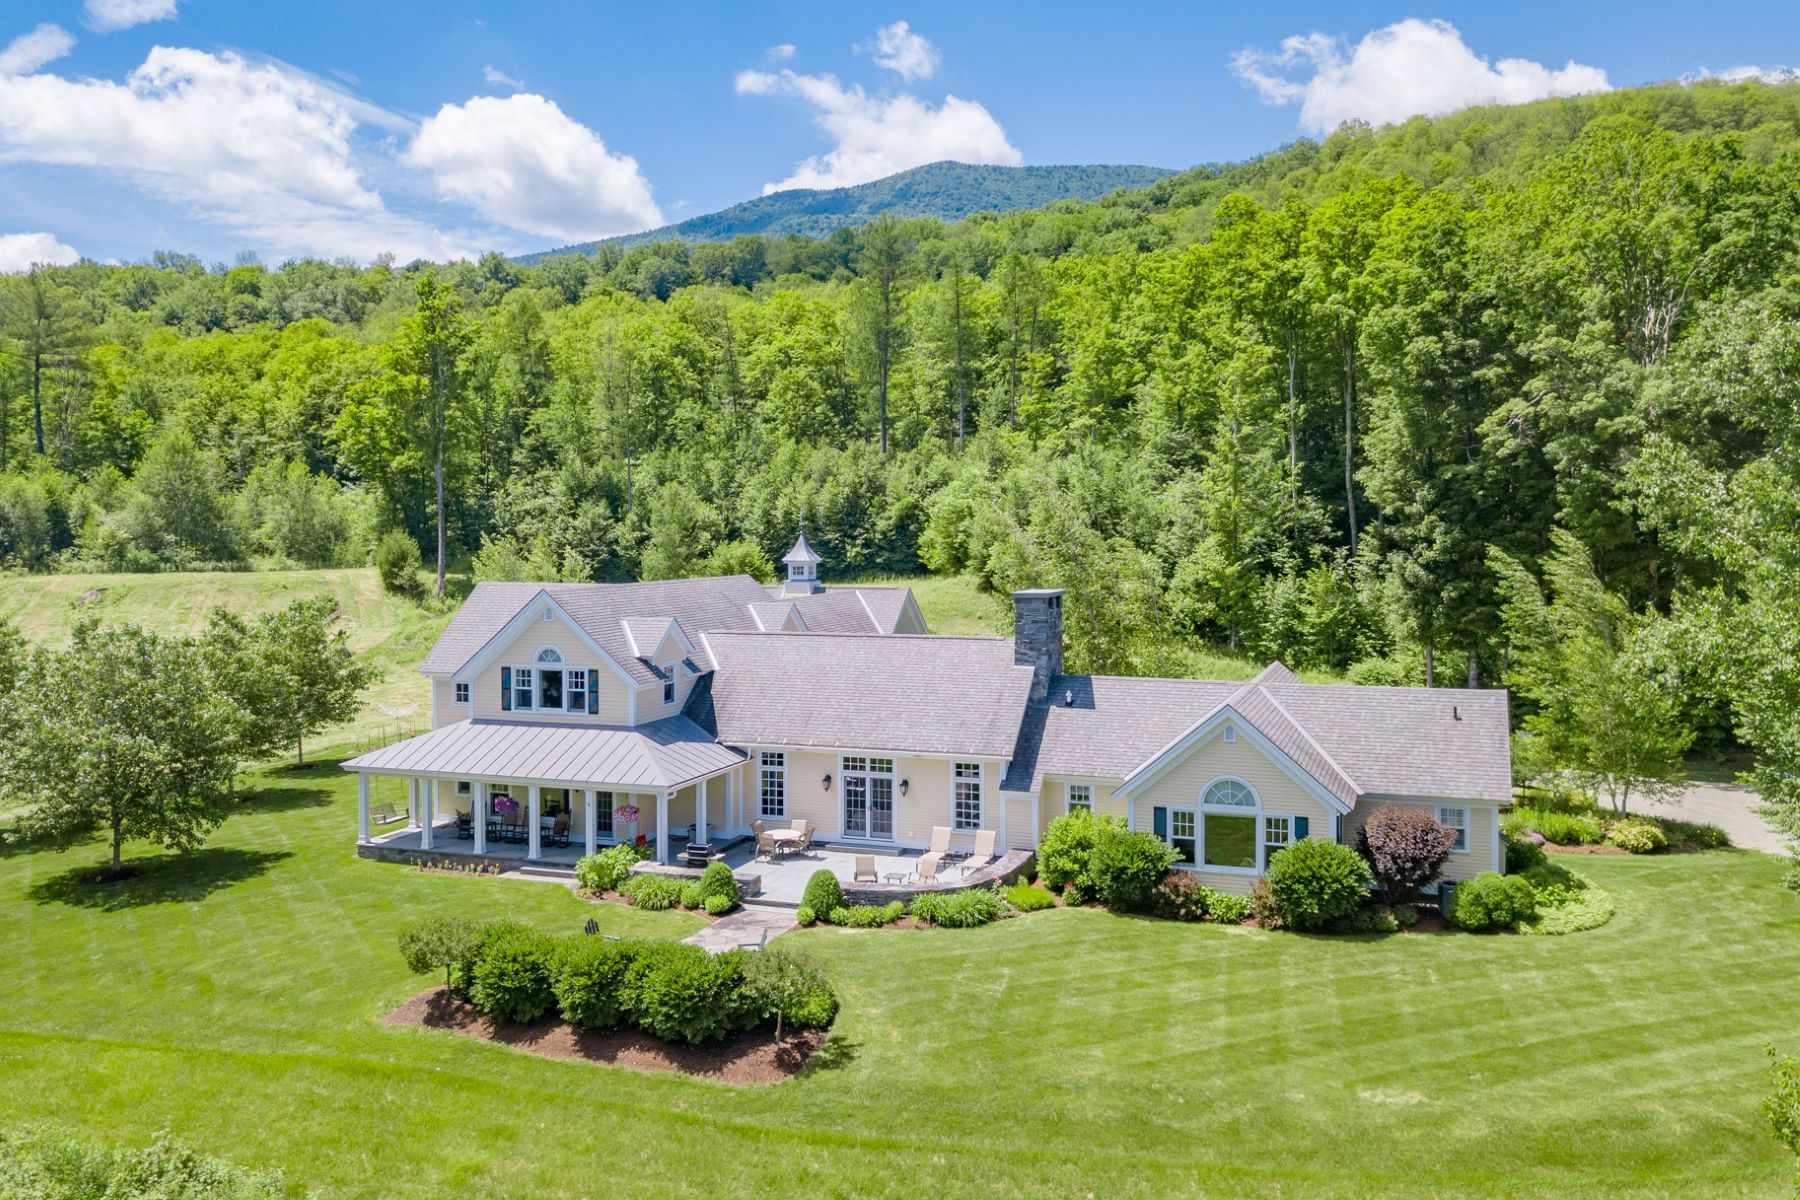 single family homes for Sale at Dorset Contemporary Cape 1273 Dorset West Rd Dorset, Vermont 05251 United States